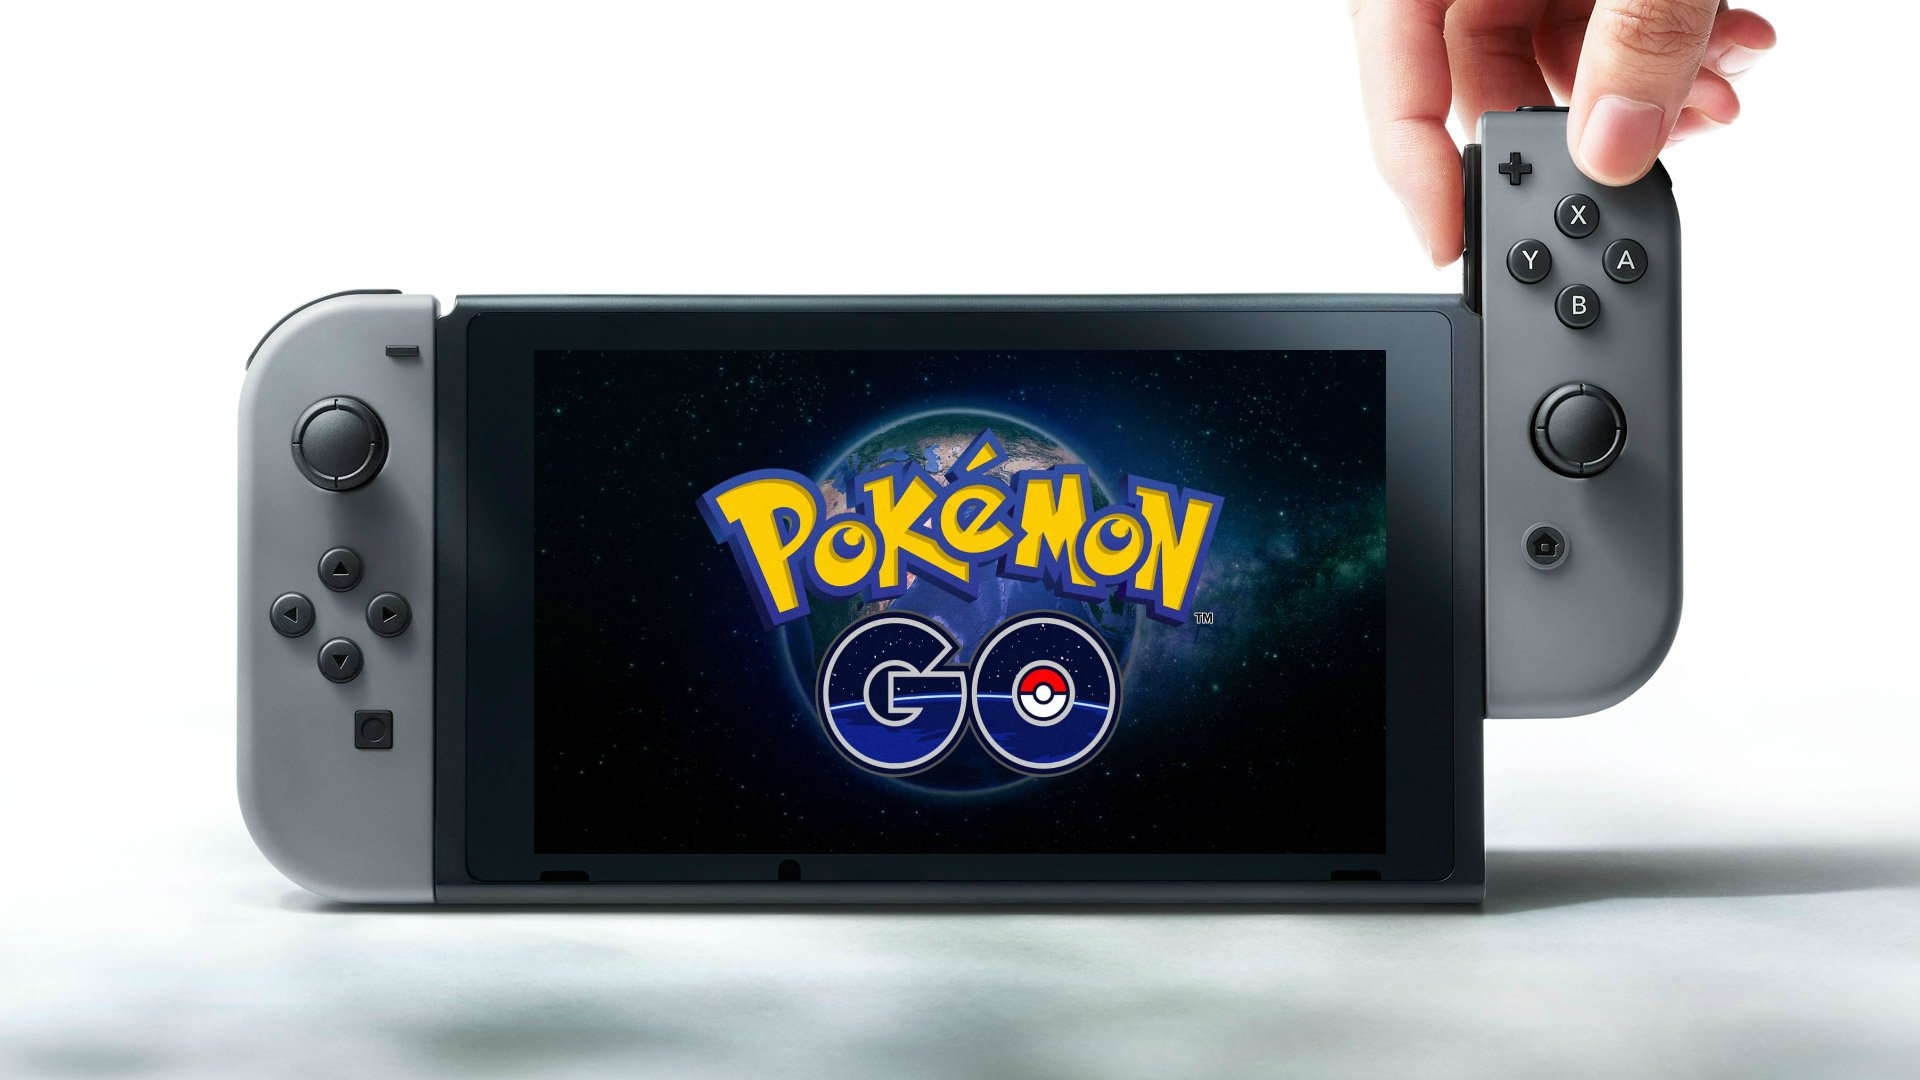 would you want the nintendo switch to play pokemon go?